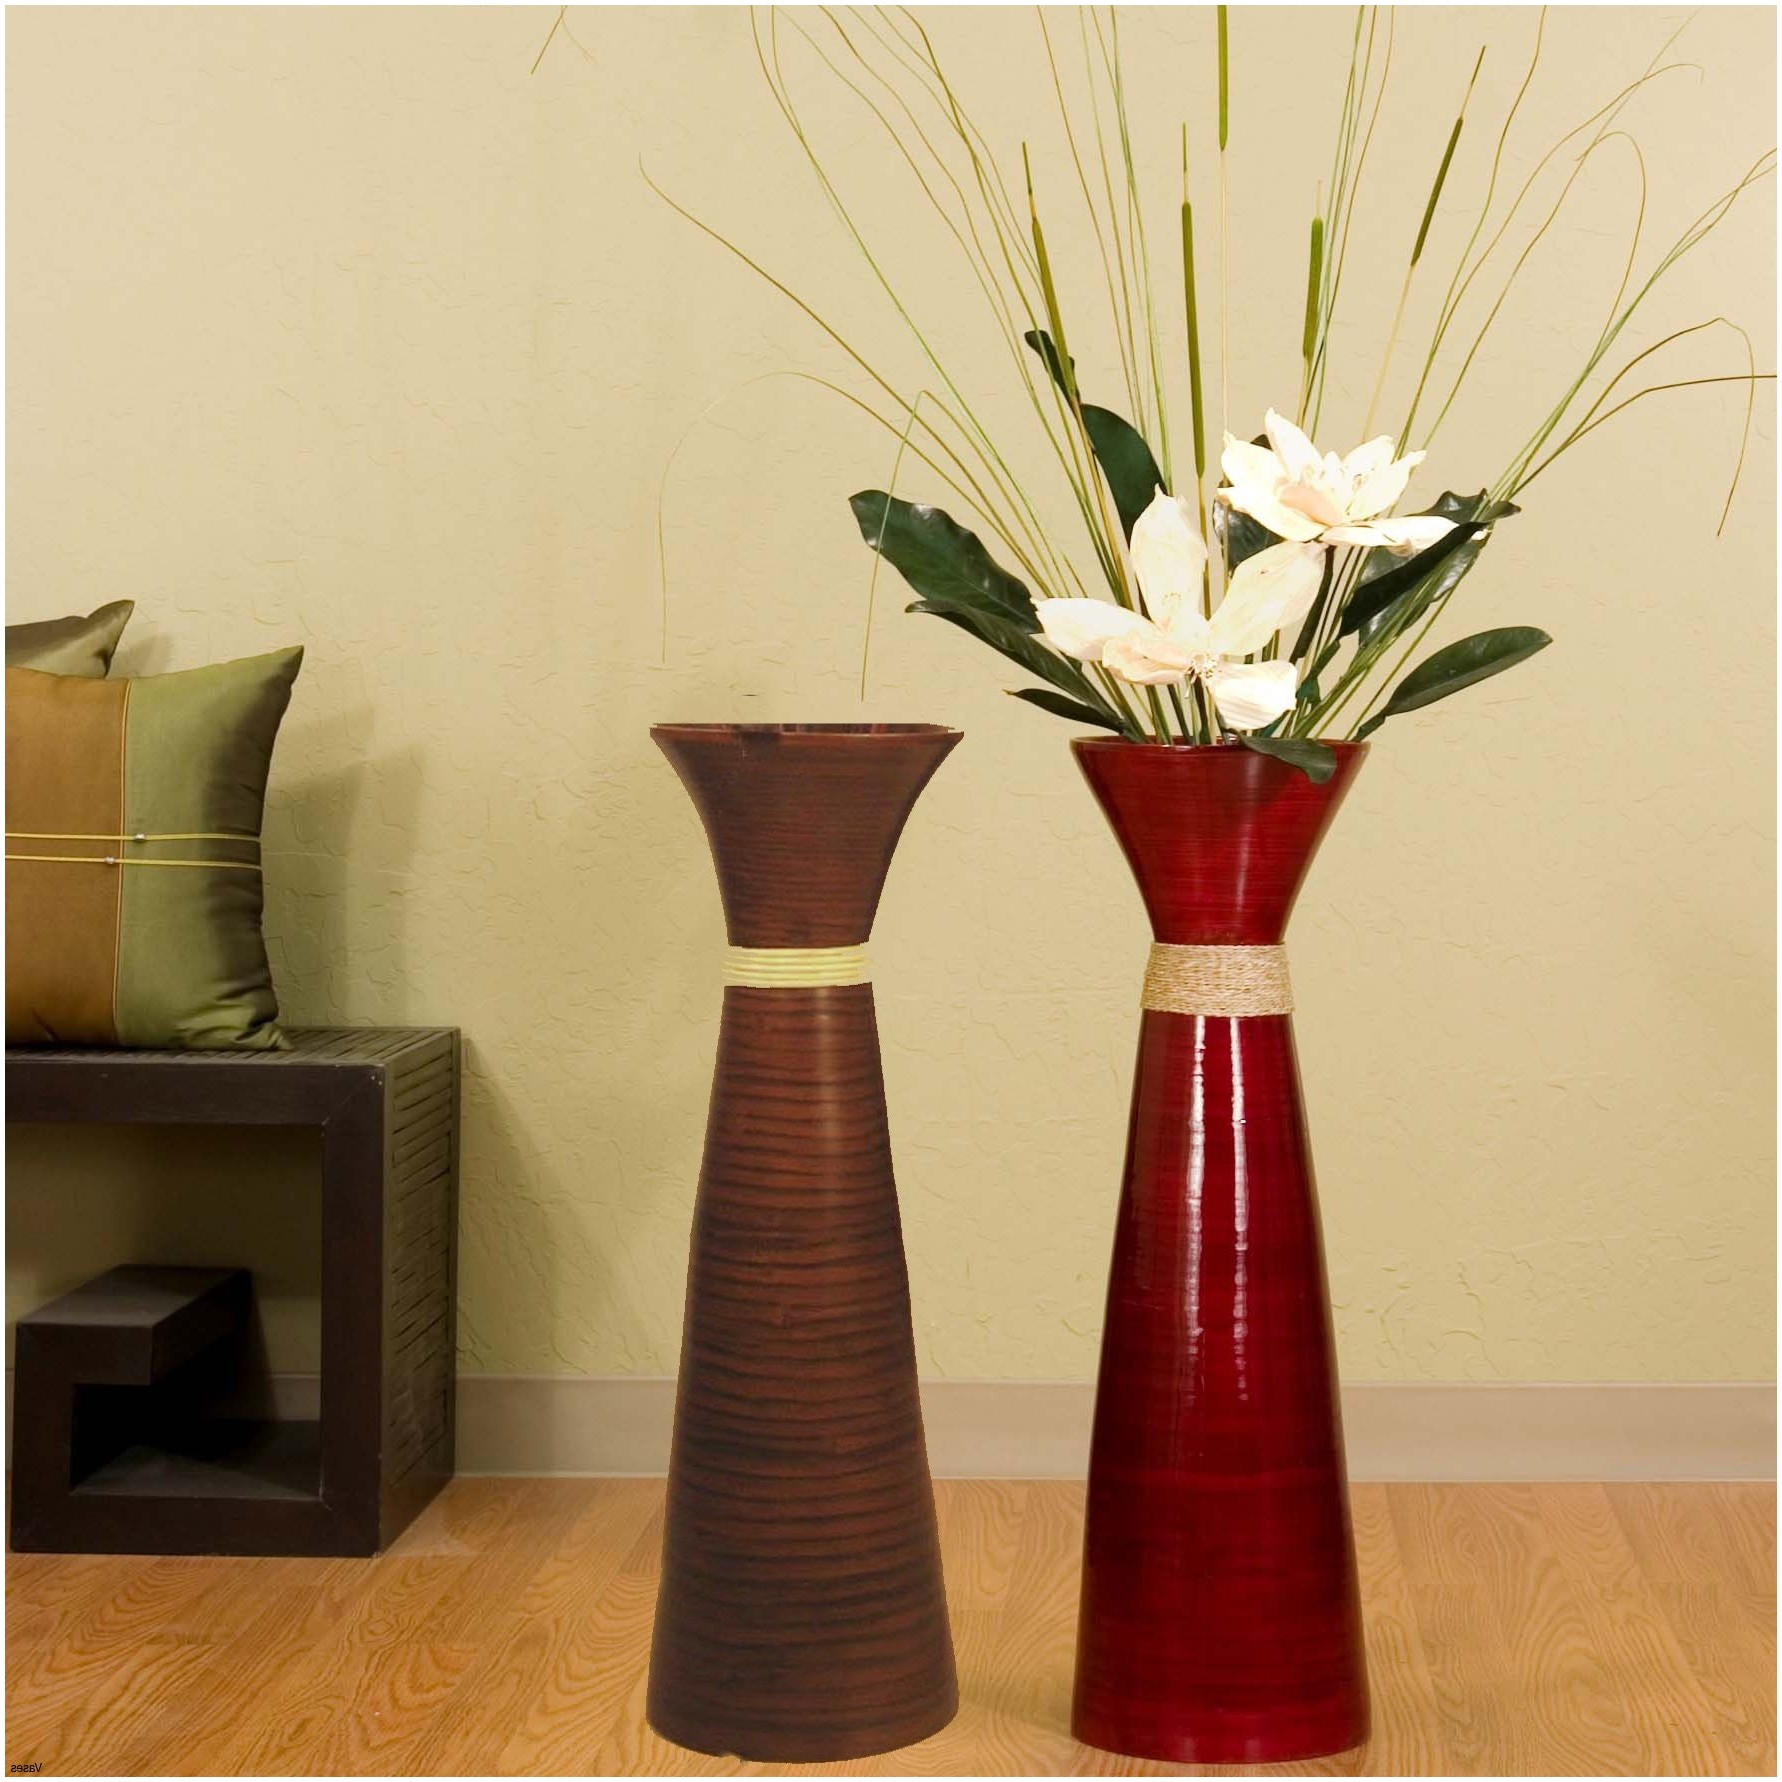 cheap big floor vases of 21 beau decorative vases anciendemutu org pertaining to floor vase colorsh vases red decorative image colorsi 0d